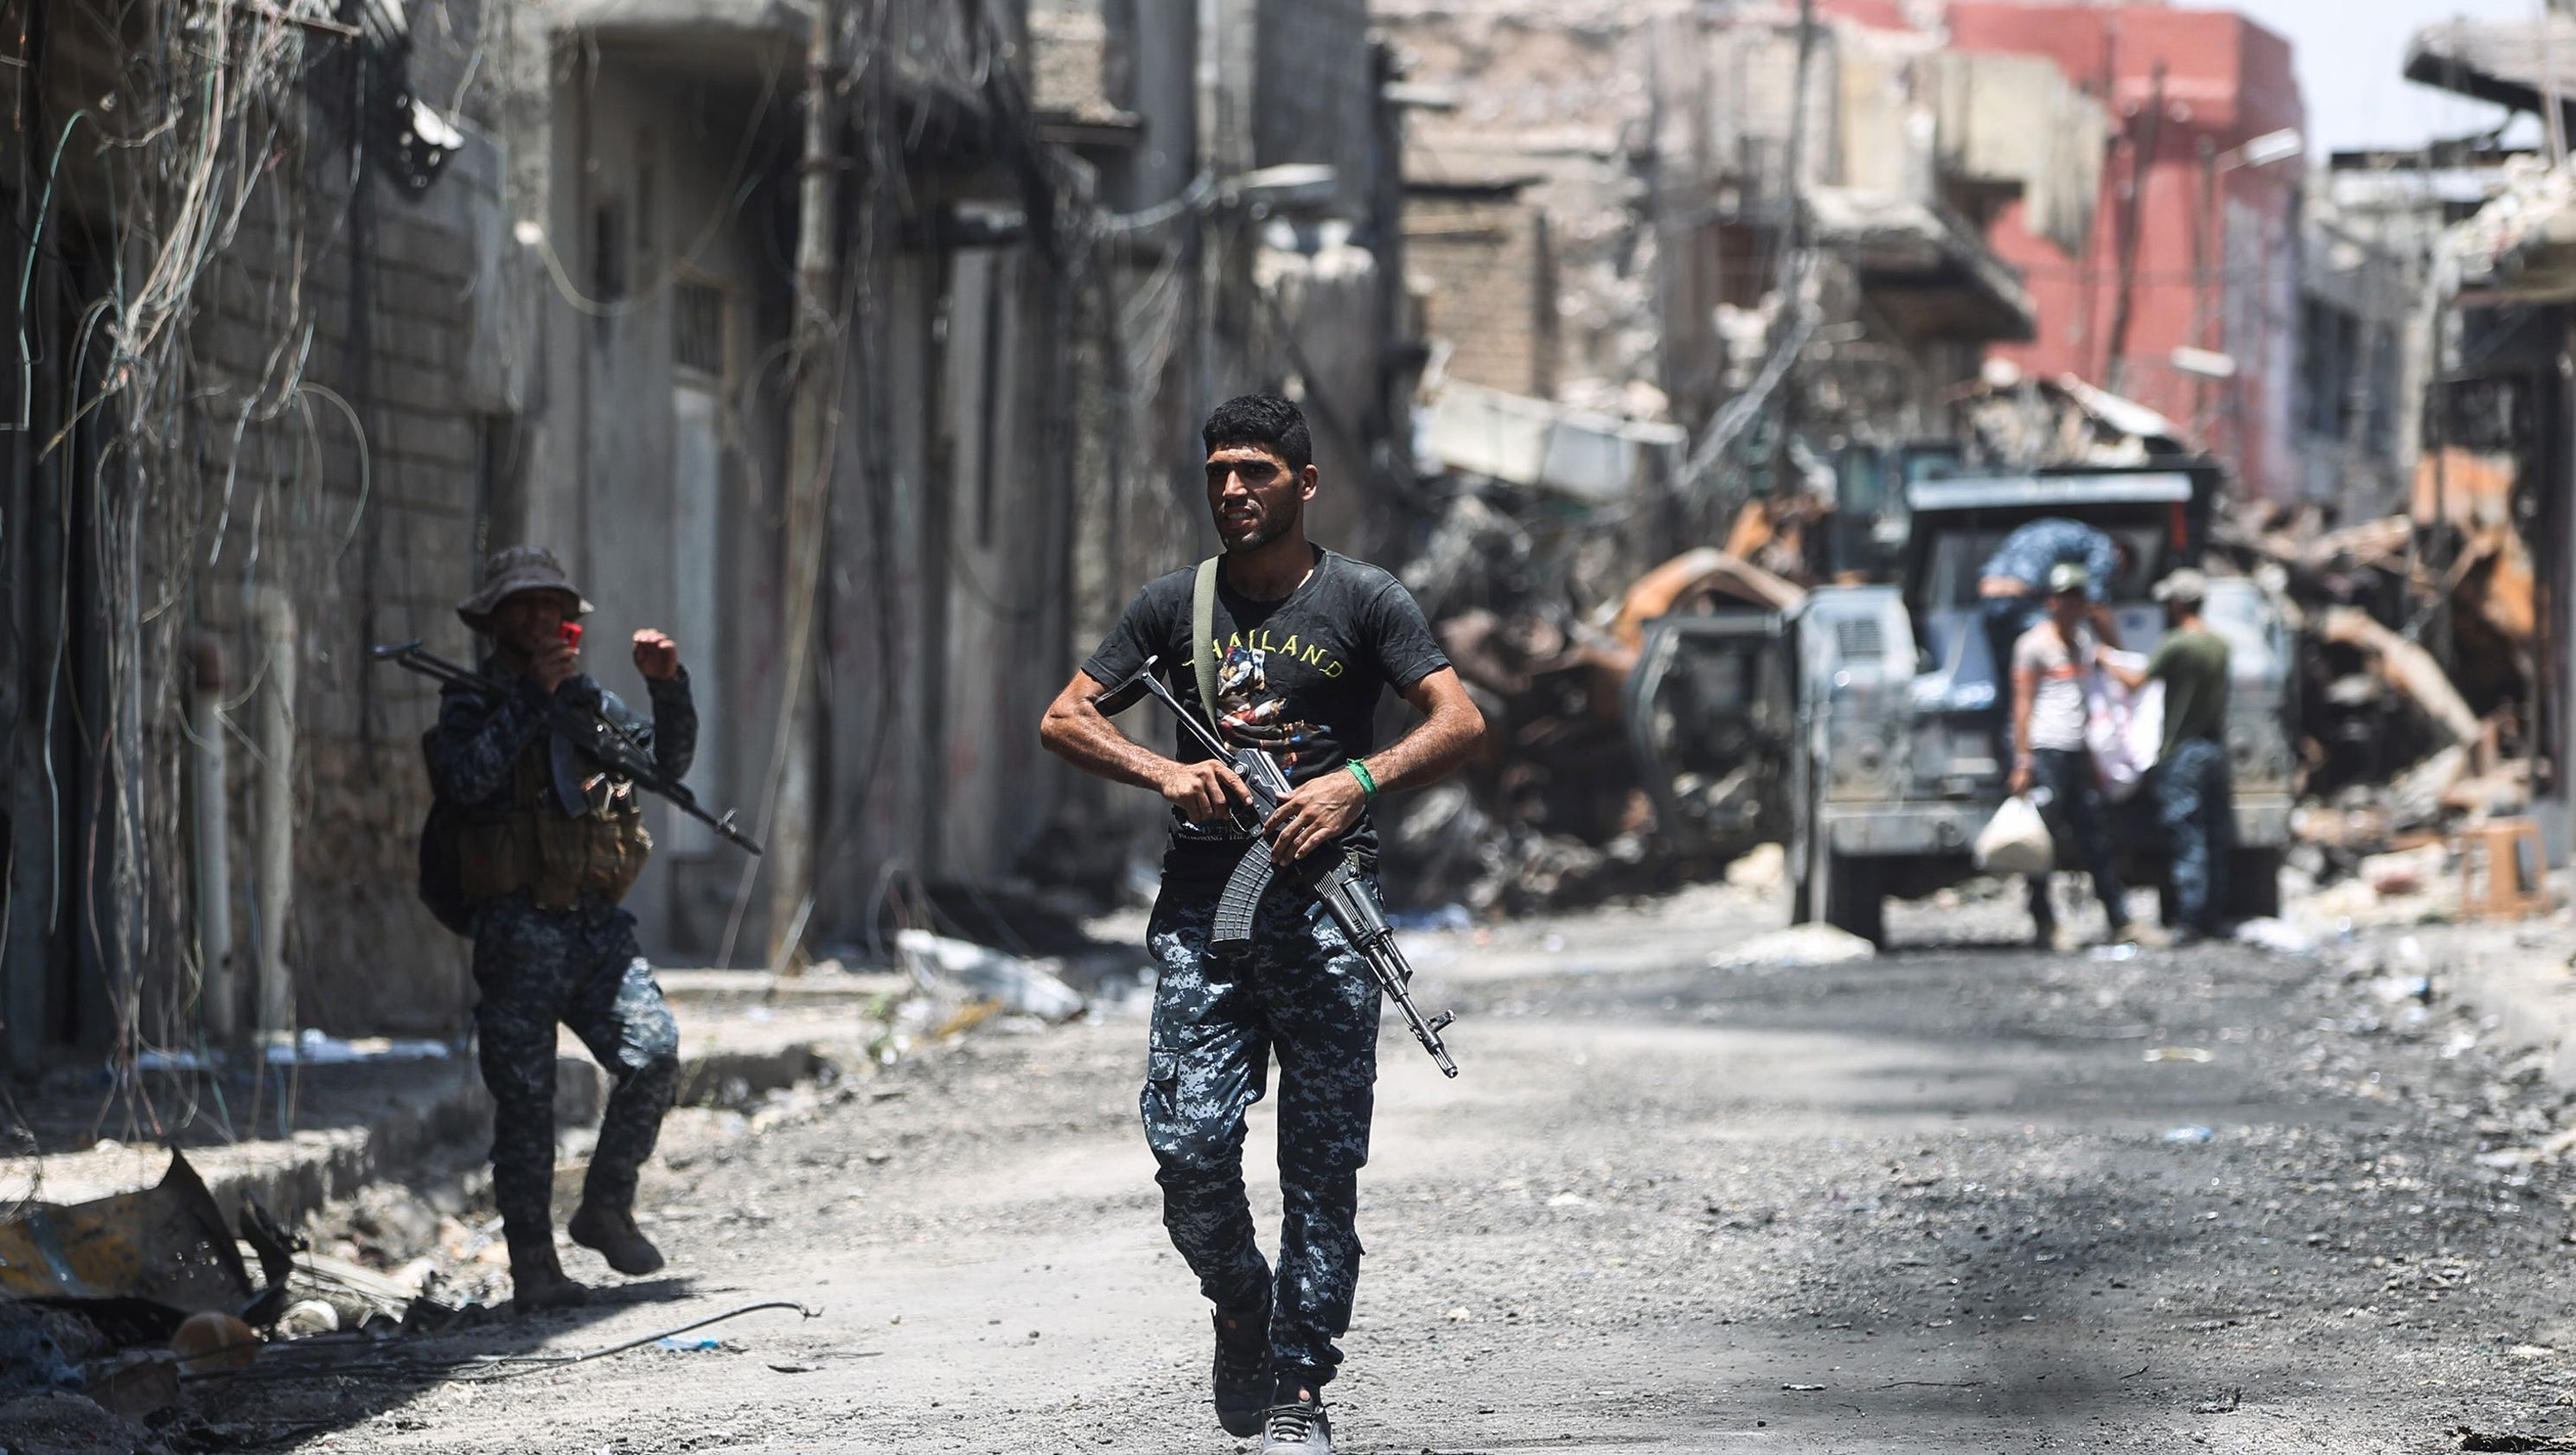 ISIS in Mosul: Militants using human shields as battle nears end